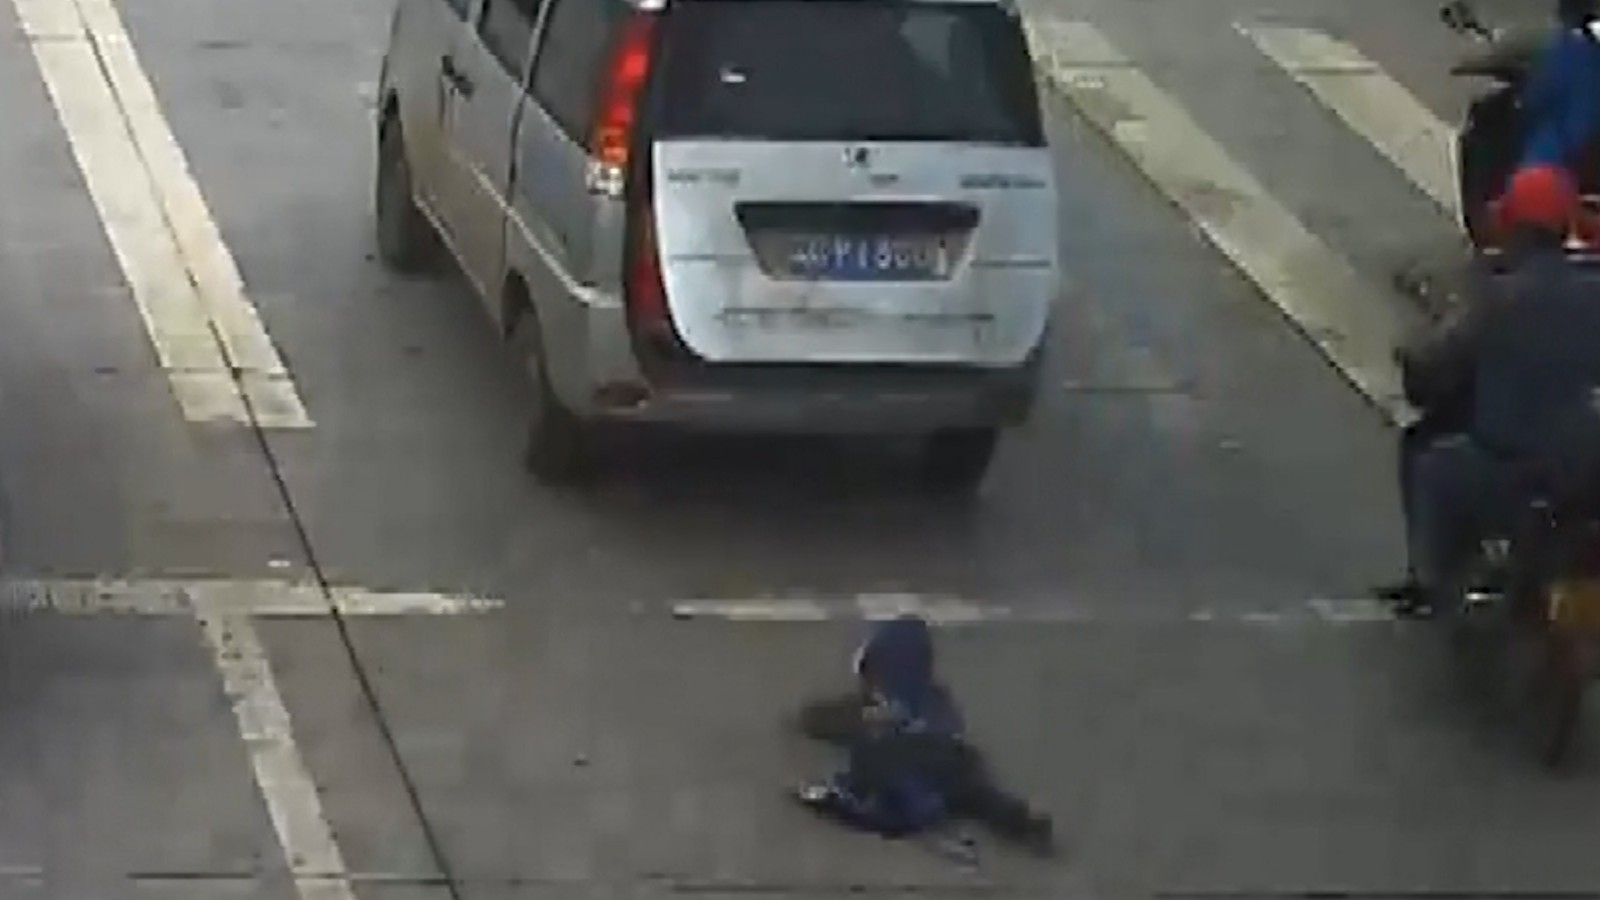 Child falls from moving car into busy road - CNN Video